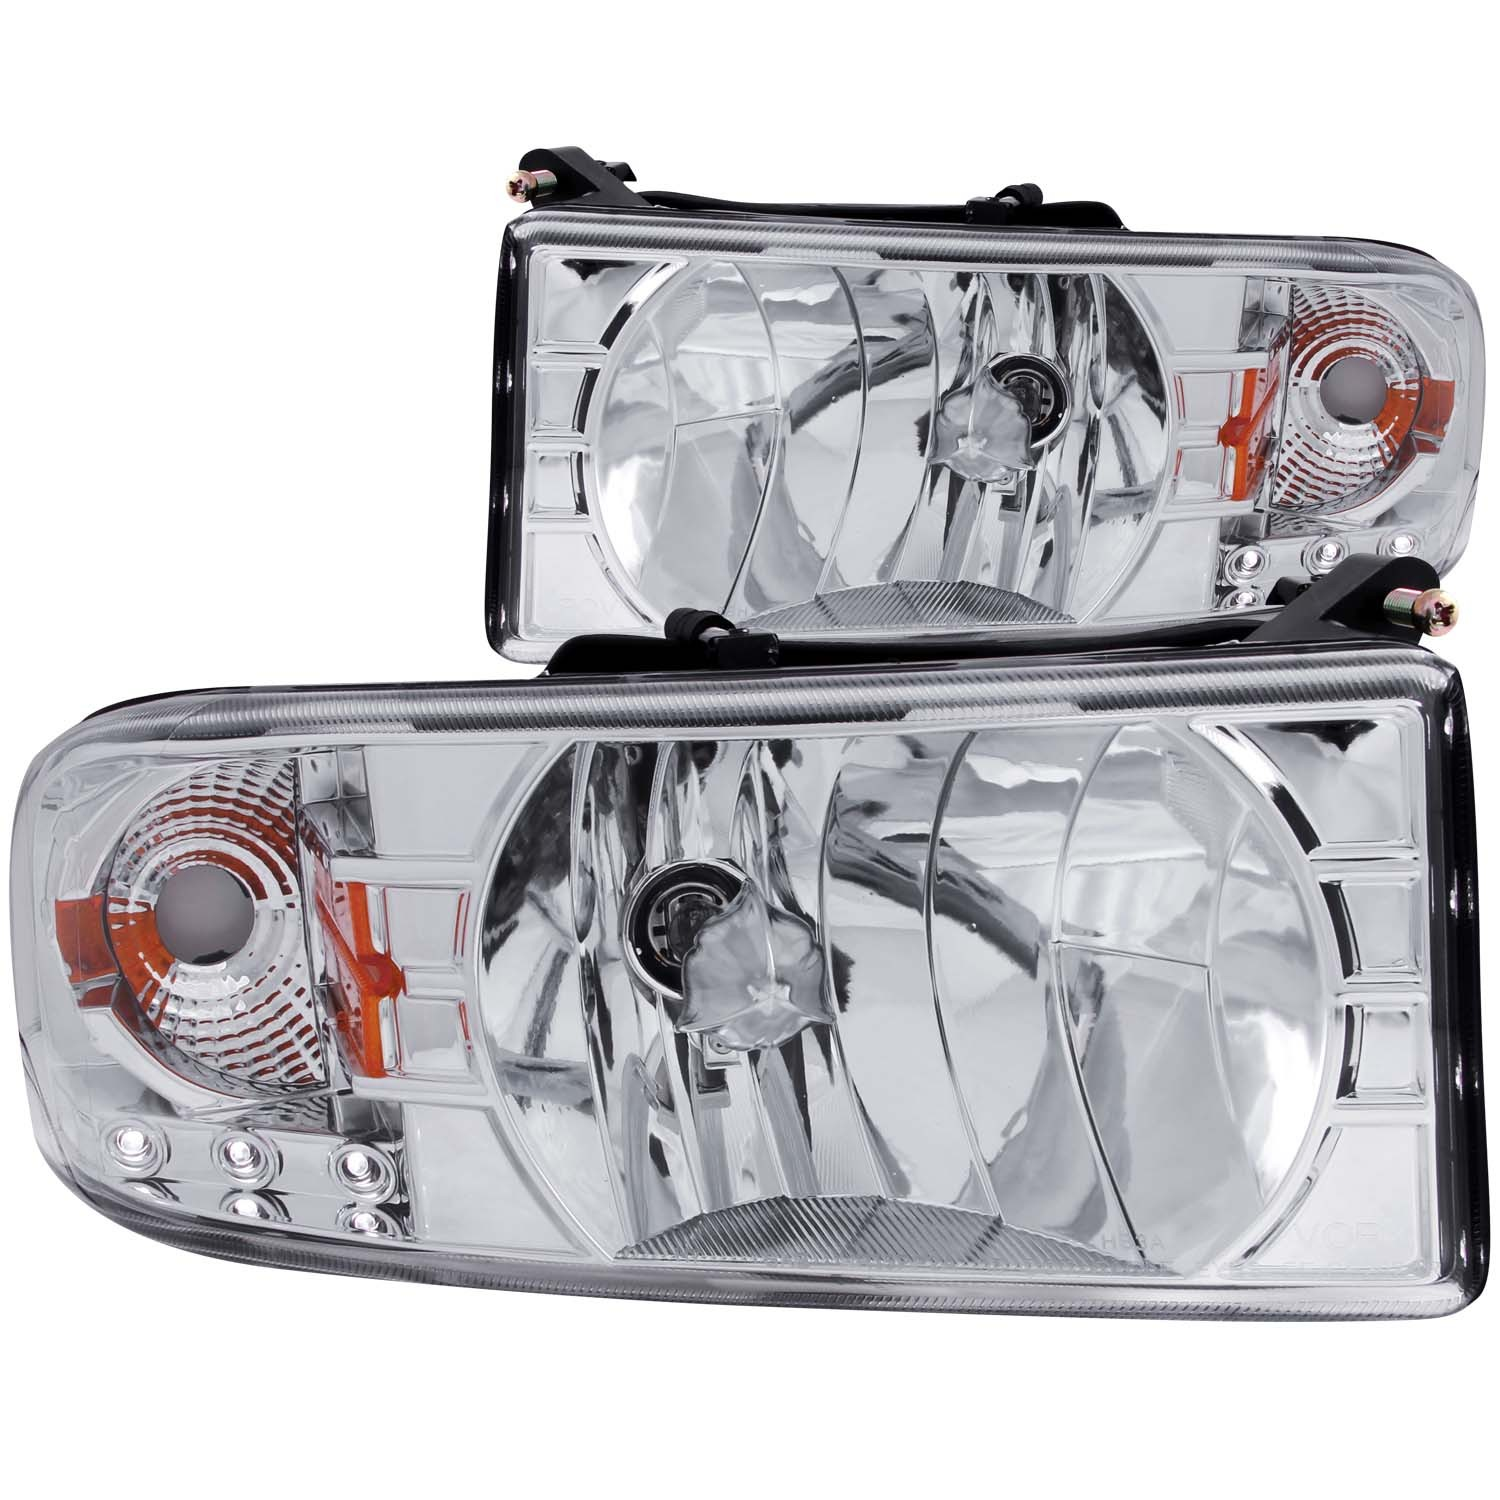 Details about Fits Dodge Ram 1500 Ram 2500 Ram 3500 Headlight Left Driver &  Right Passenger